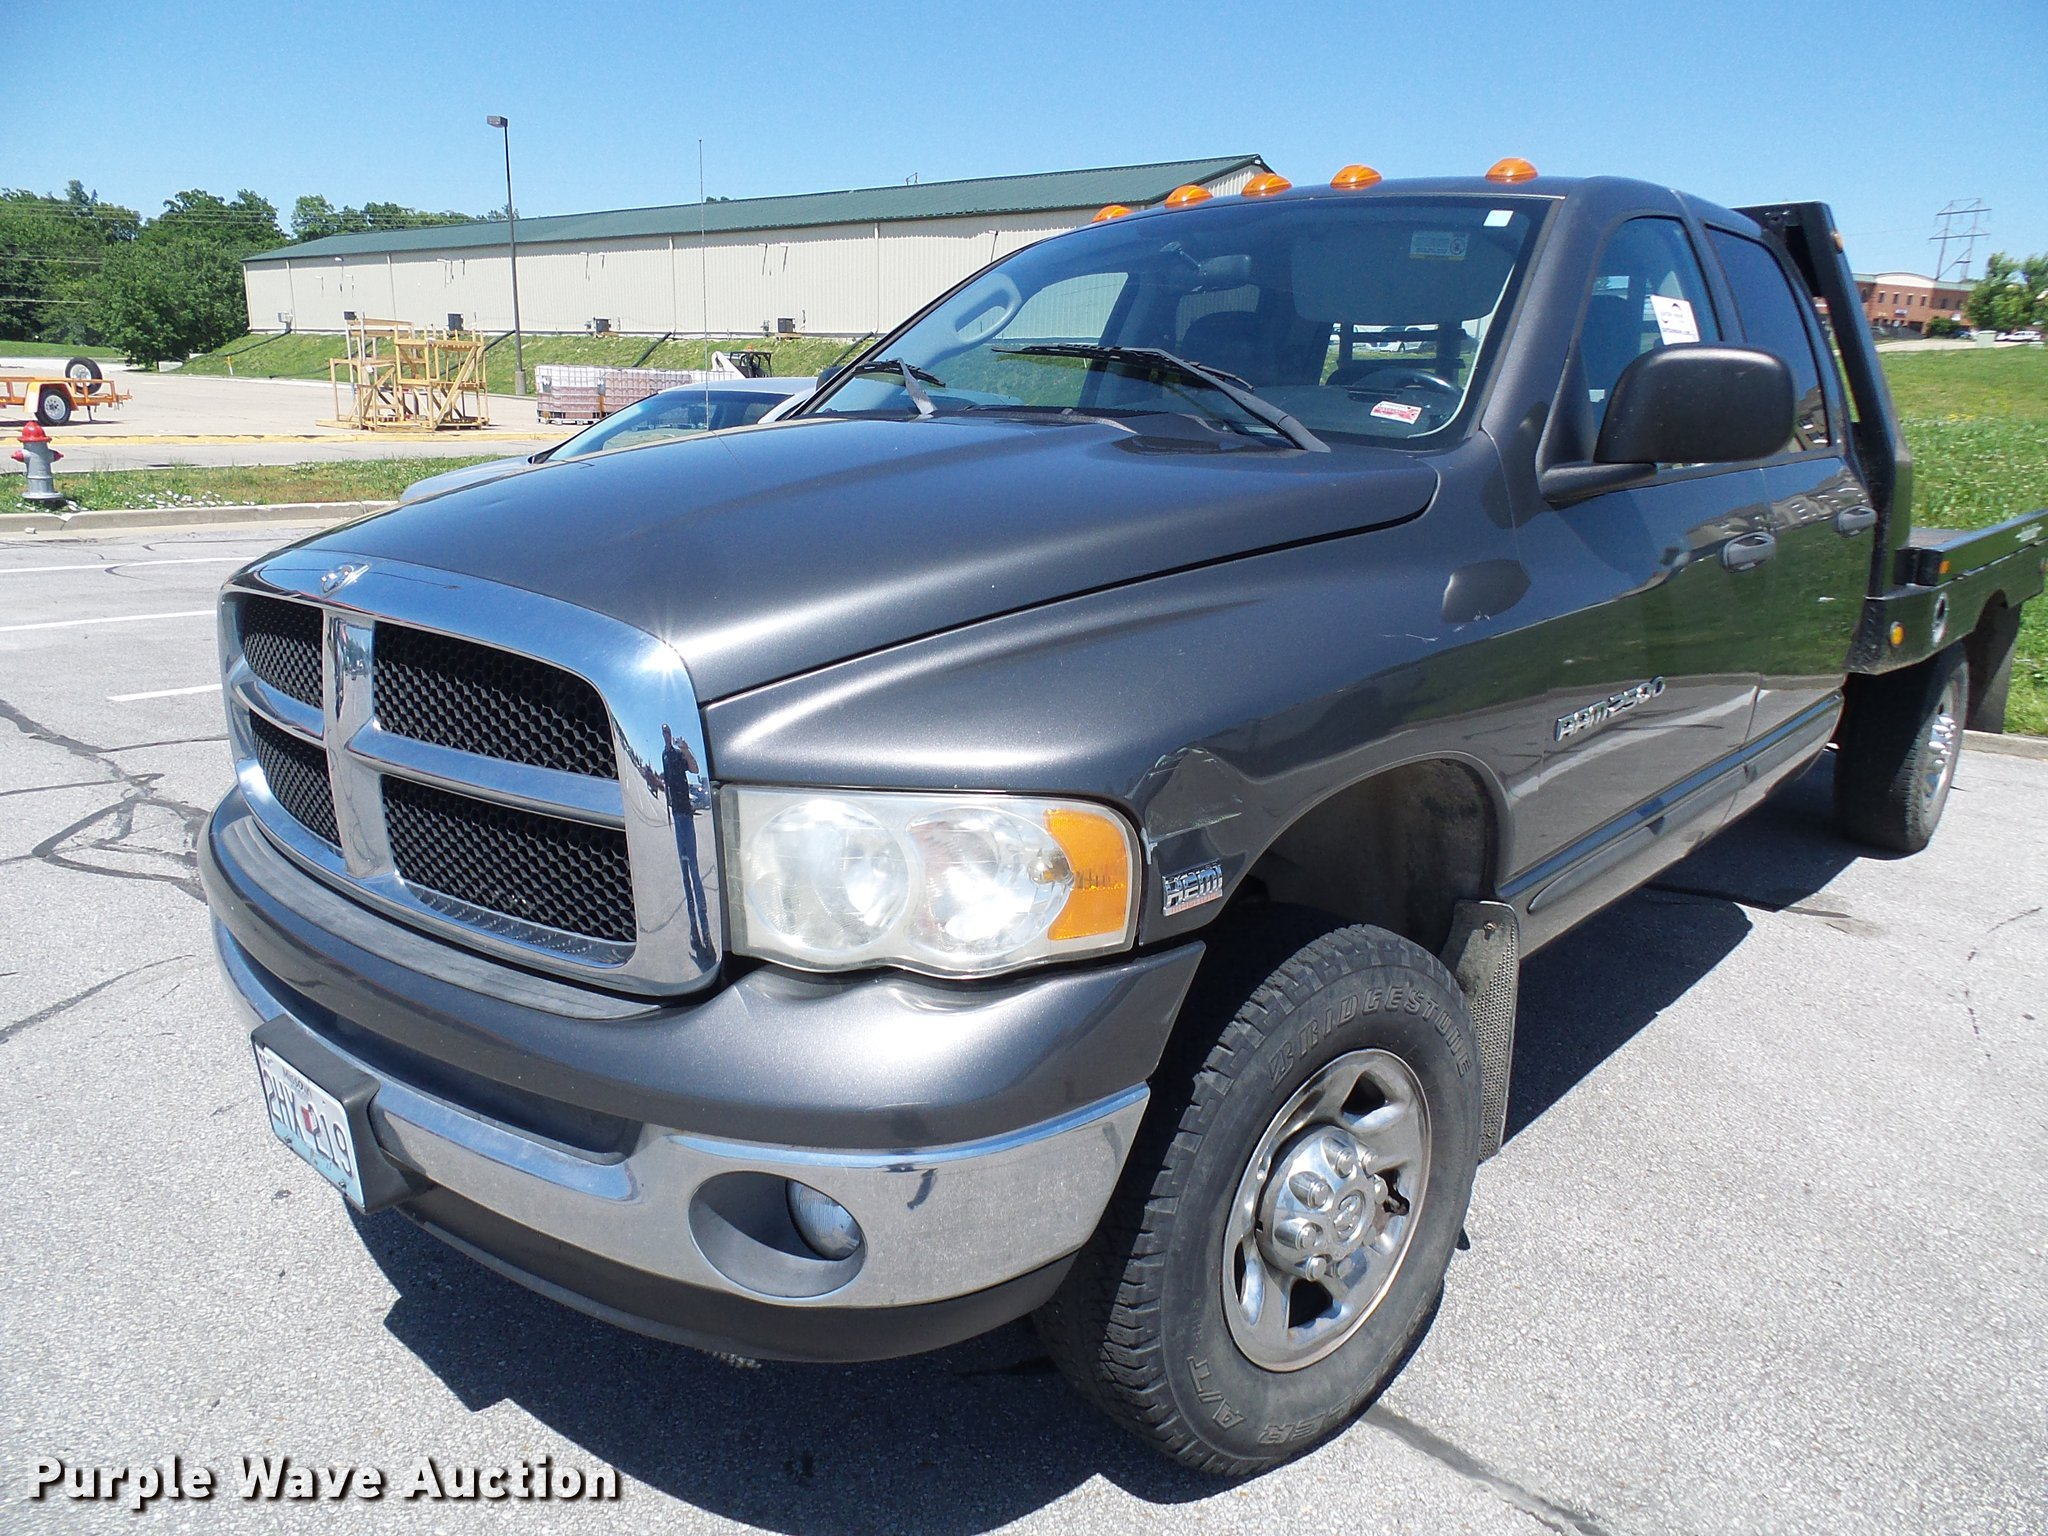 2004 Dodge Ram 2500 Quad Cab Flatbed Pickup Truck In Columbia Mo Item Db2193 Sold Purple Wave